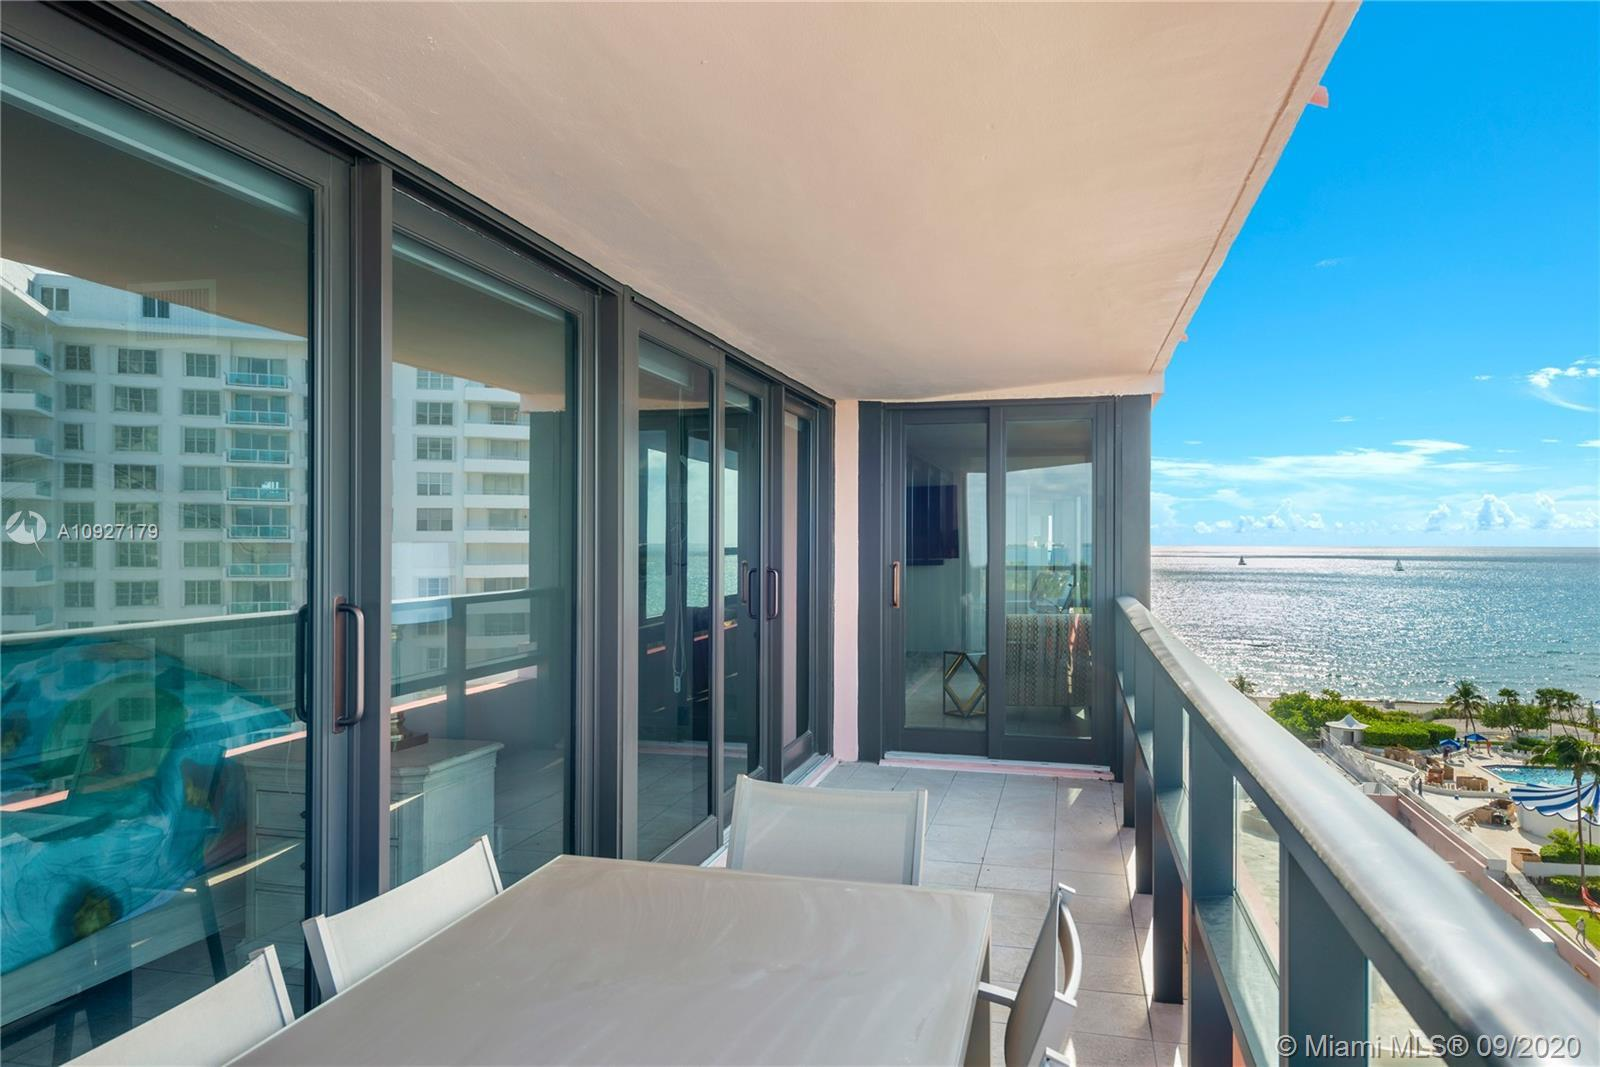 Airbnb Friendly, furnished/turnkey residence at The Alexander. This unique combined floor plan was f